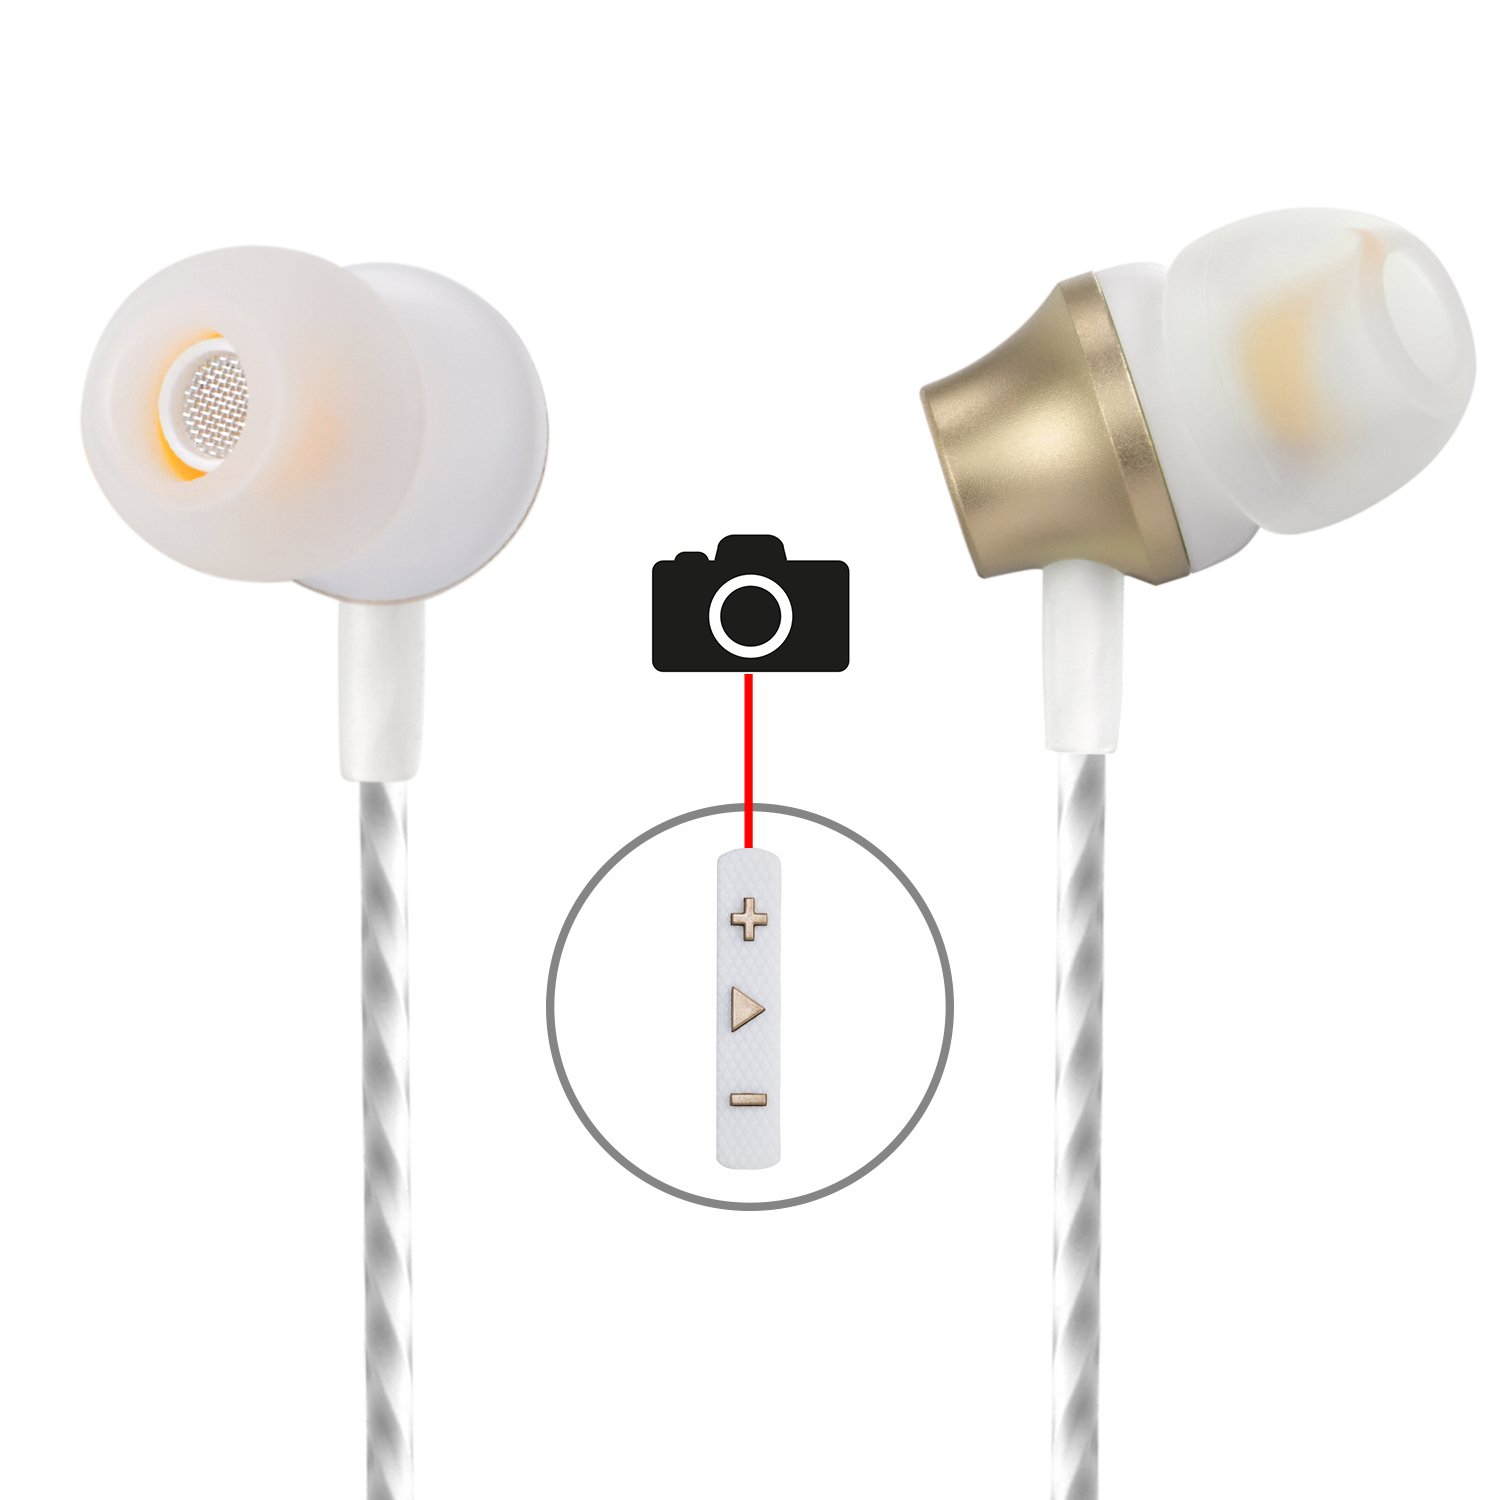 Earbuds with Selfie, Kicoeoy Wired in Ear Noise Isolating Headphone with Remote Mic Volume Control Metal Housing Best Stereo Bass for All 3.5mm Audio Devices Gold